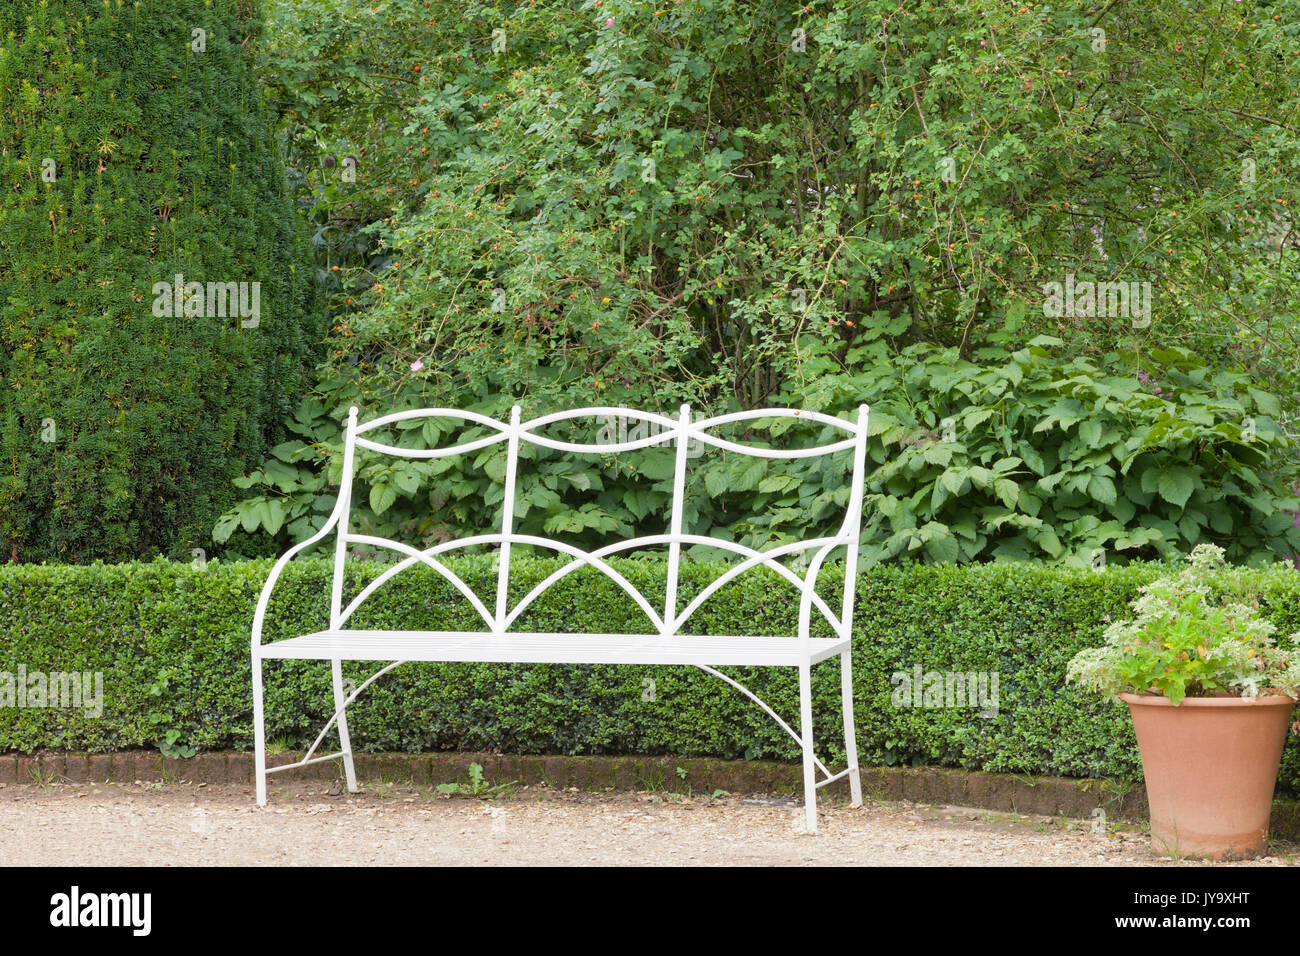 Vintage white bench in a garden, by a conifer tree, hedge, green shrubs and flower pot . - Stock Image